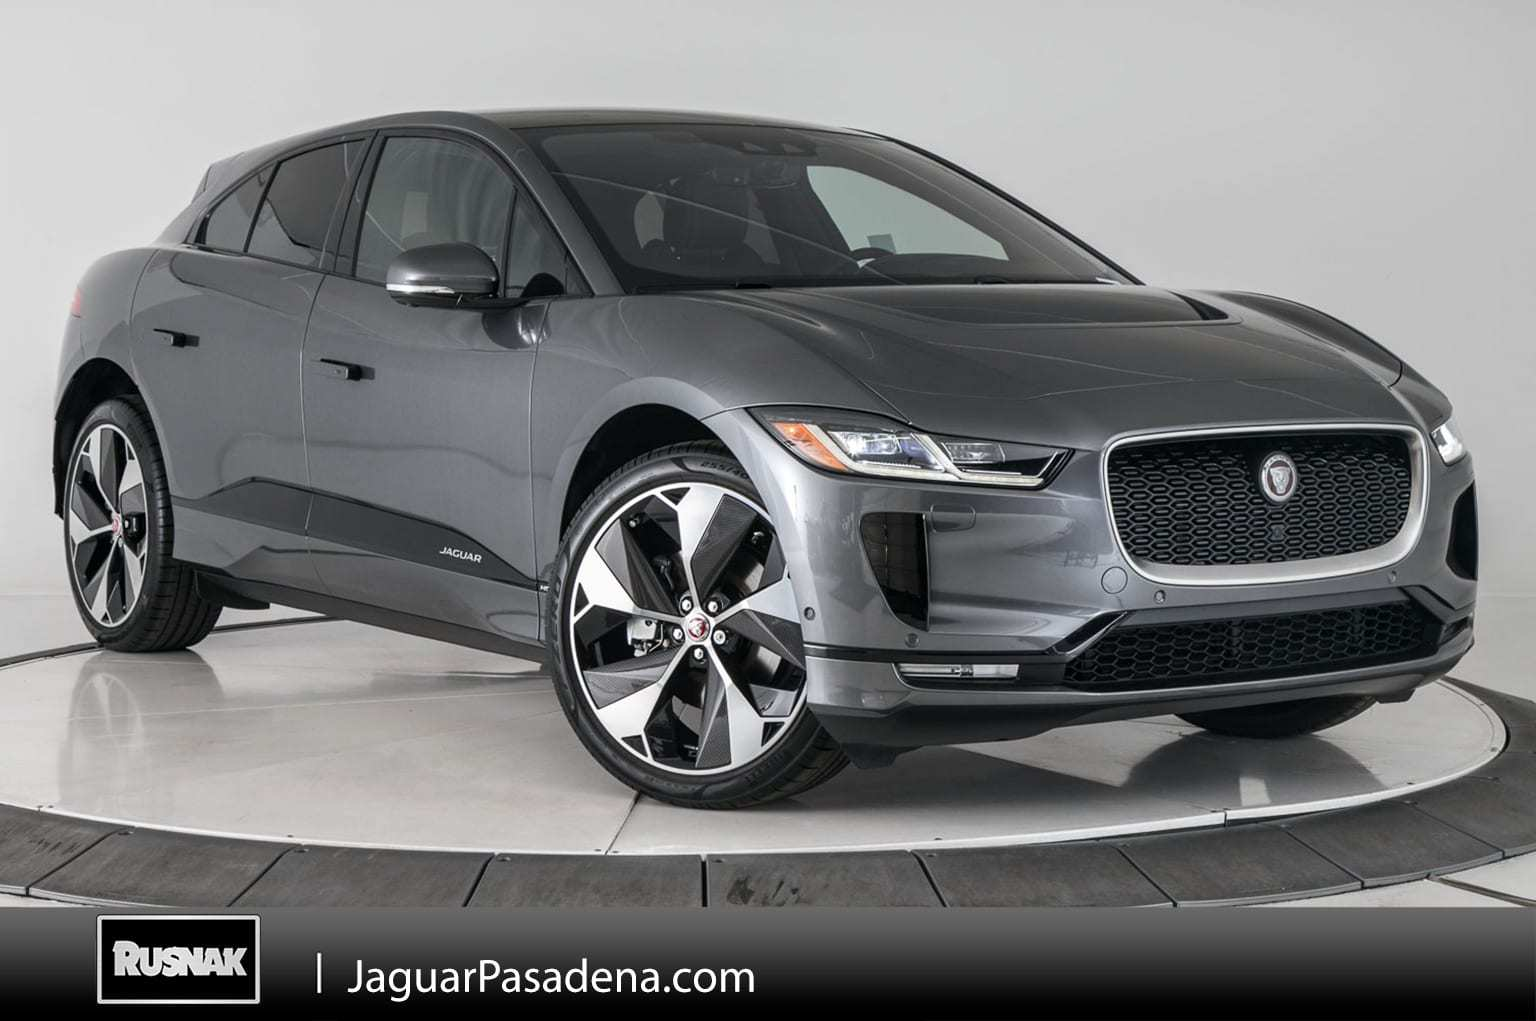 68 All New 2019 Jaguar I Pace First Edition Spy Shoot